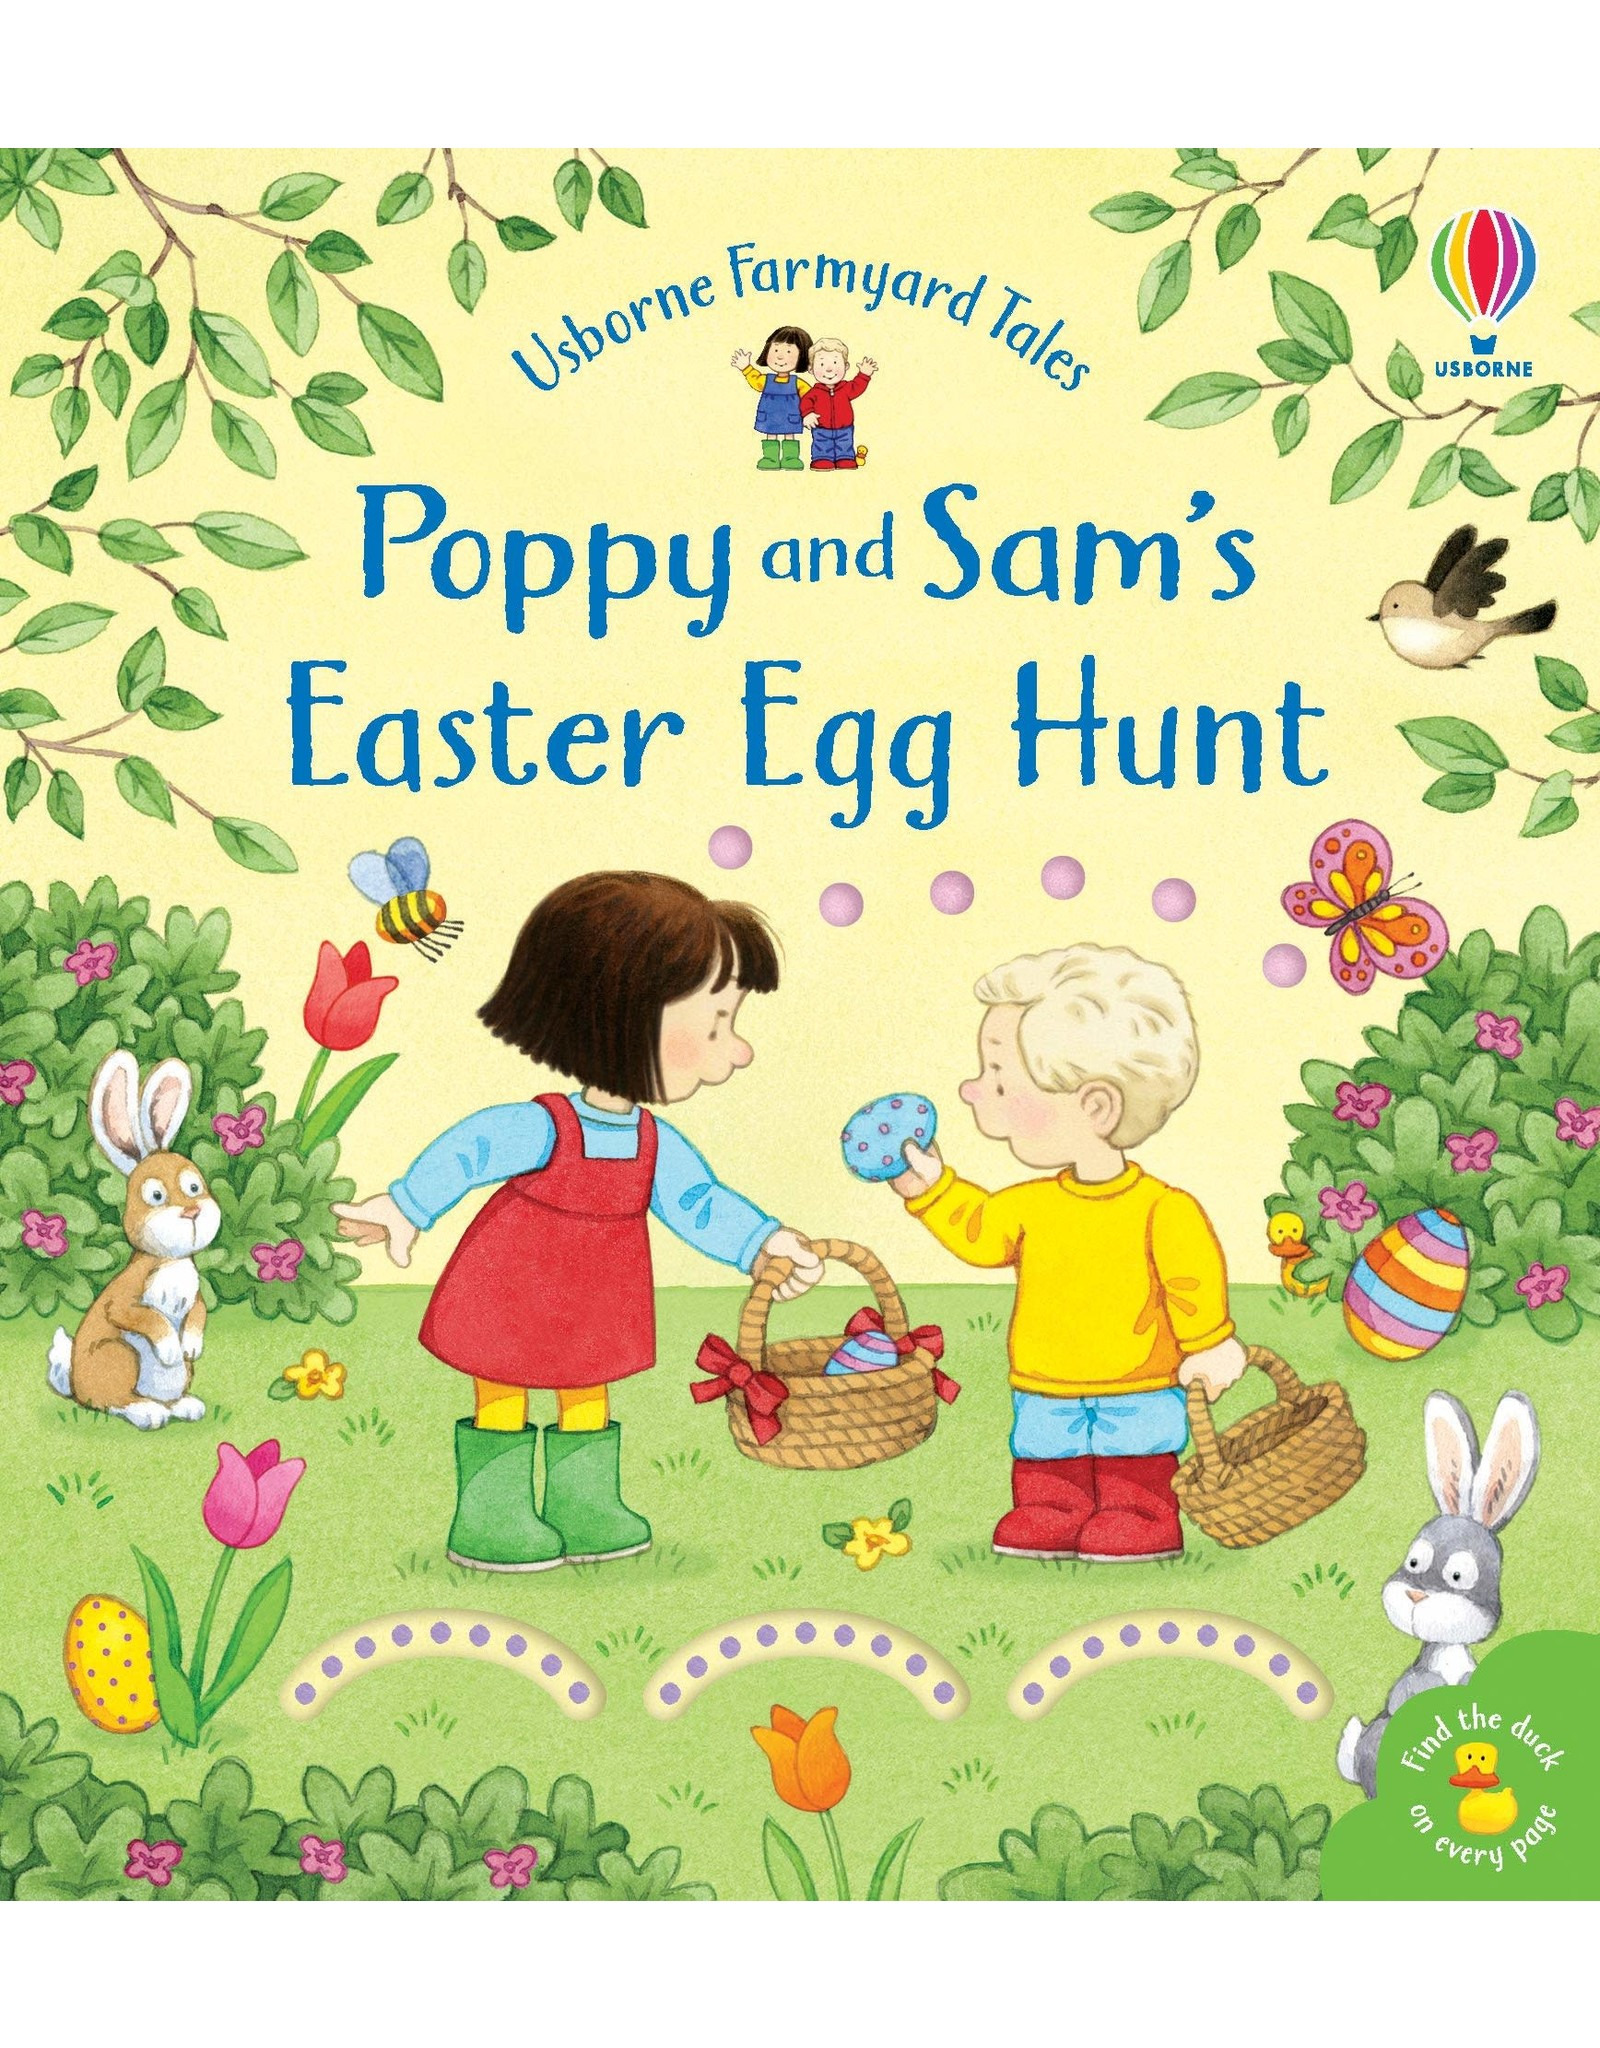 Farmyard Tales Poppy and Sam's Easter Egg Hunt